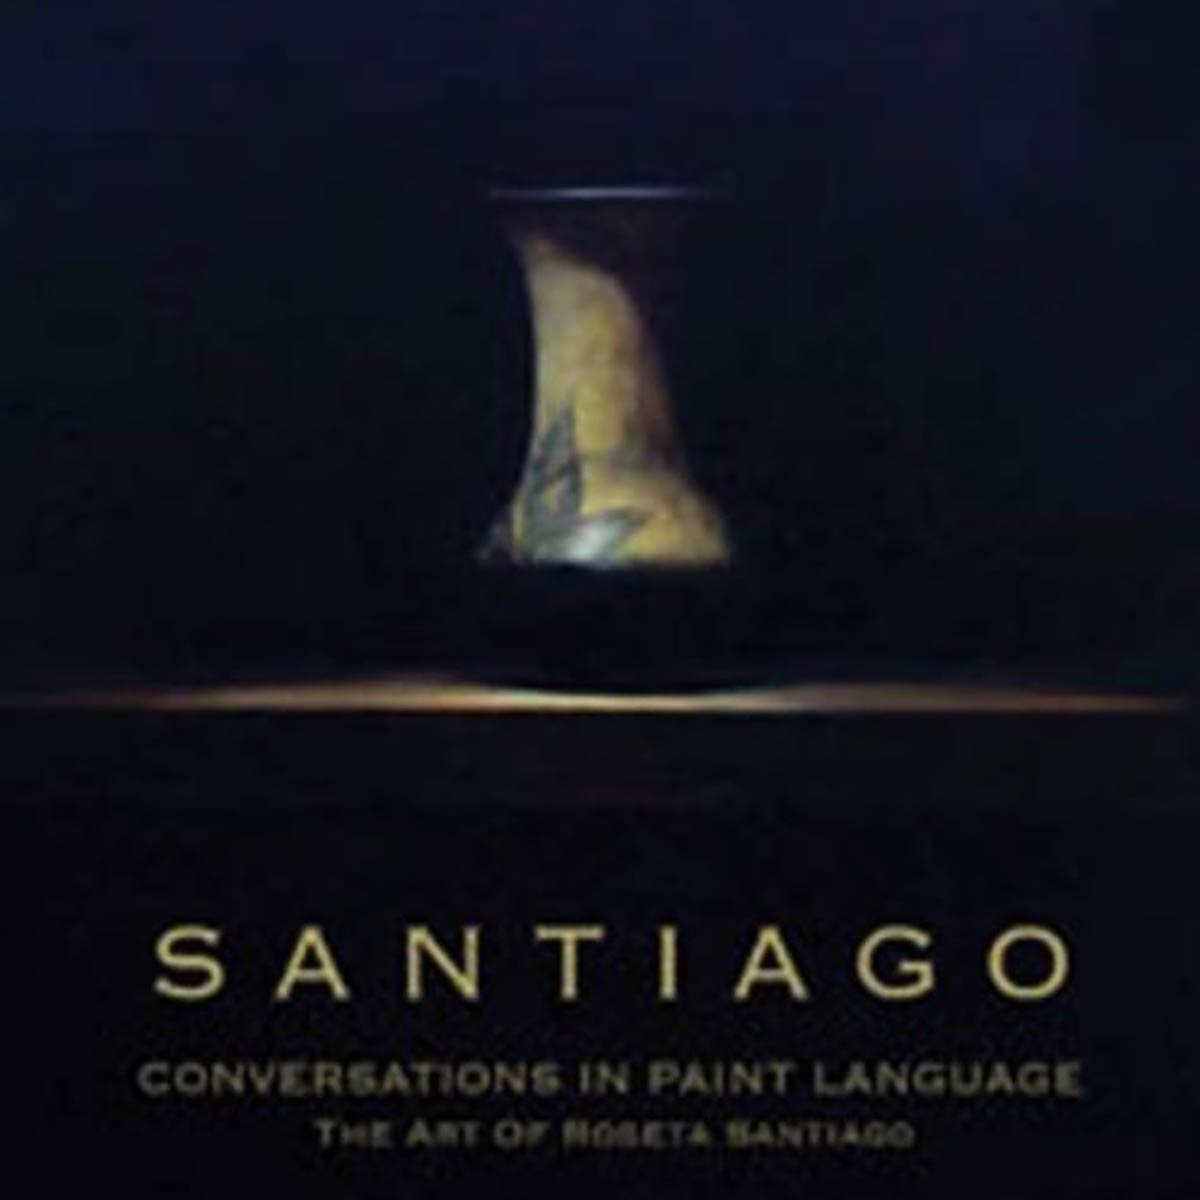 conversations-in-paint-language-cover